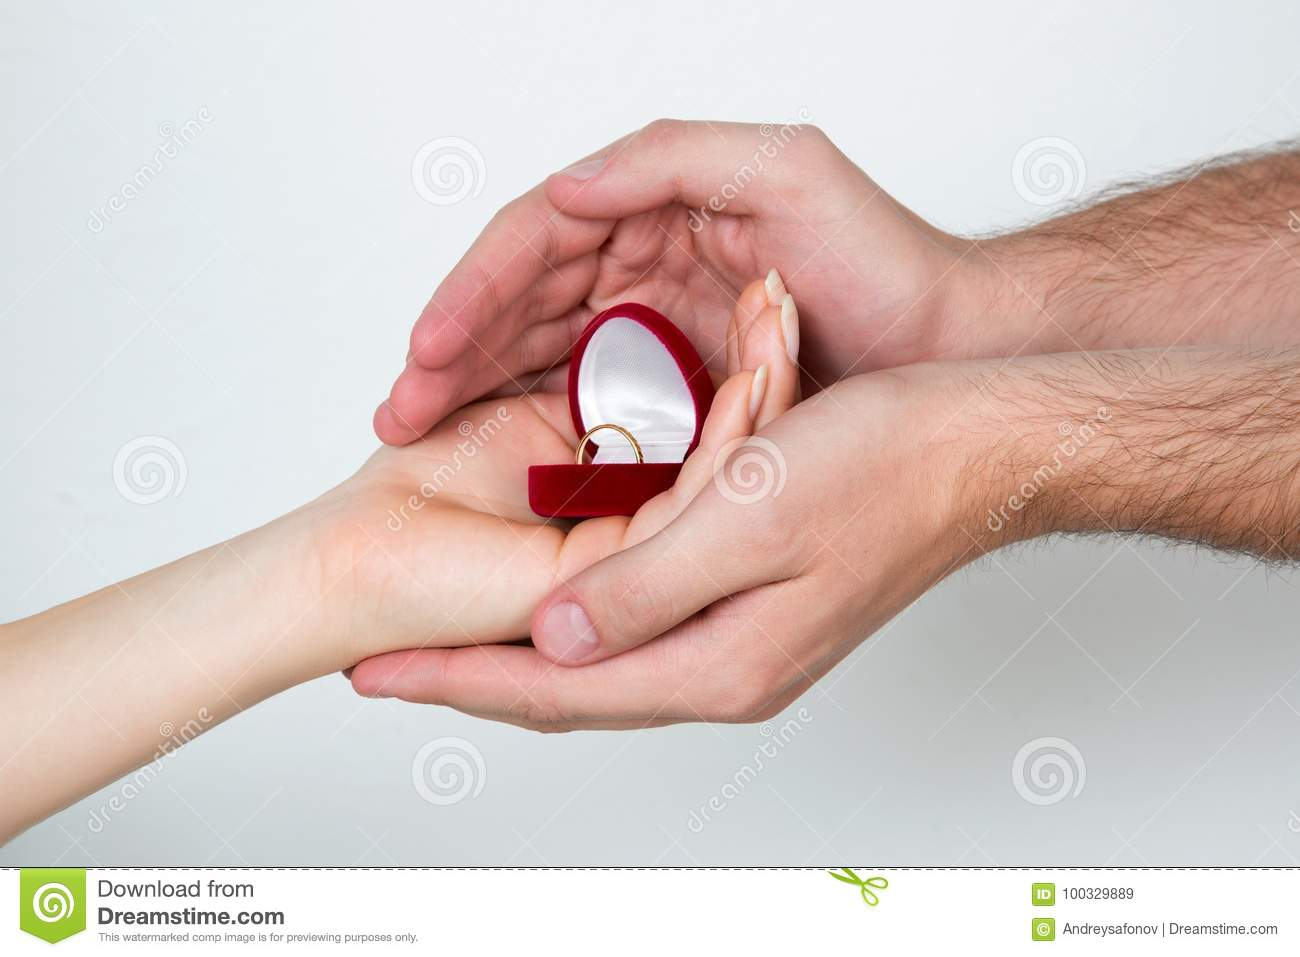 Female And Male Hands Holding The Ring Box Stock Image - Image of ...